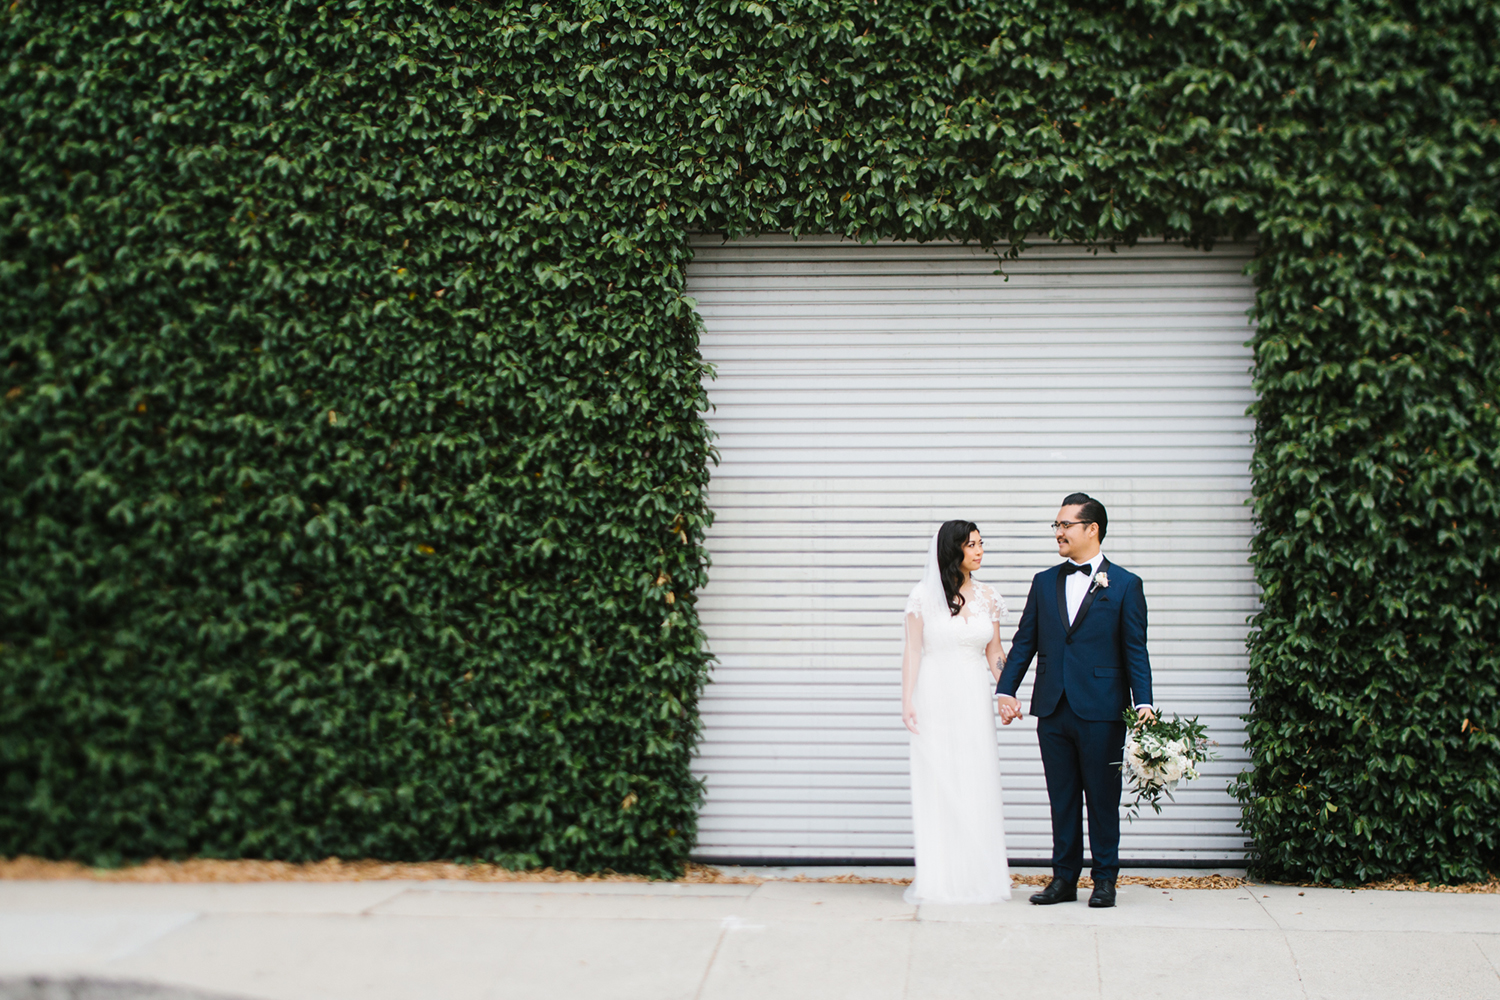 Bride and groom portraits in front of green wall